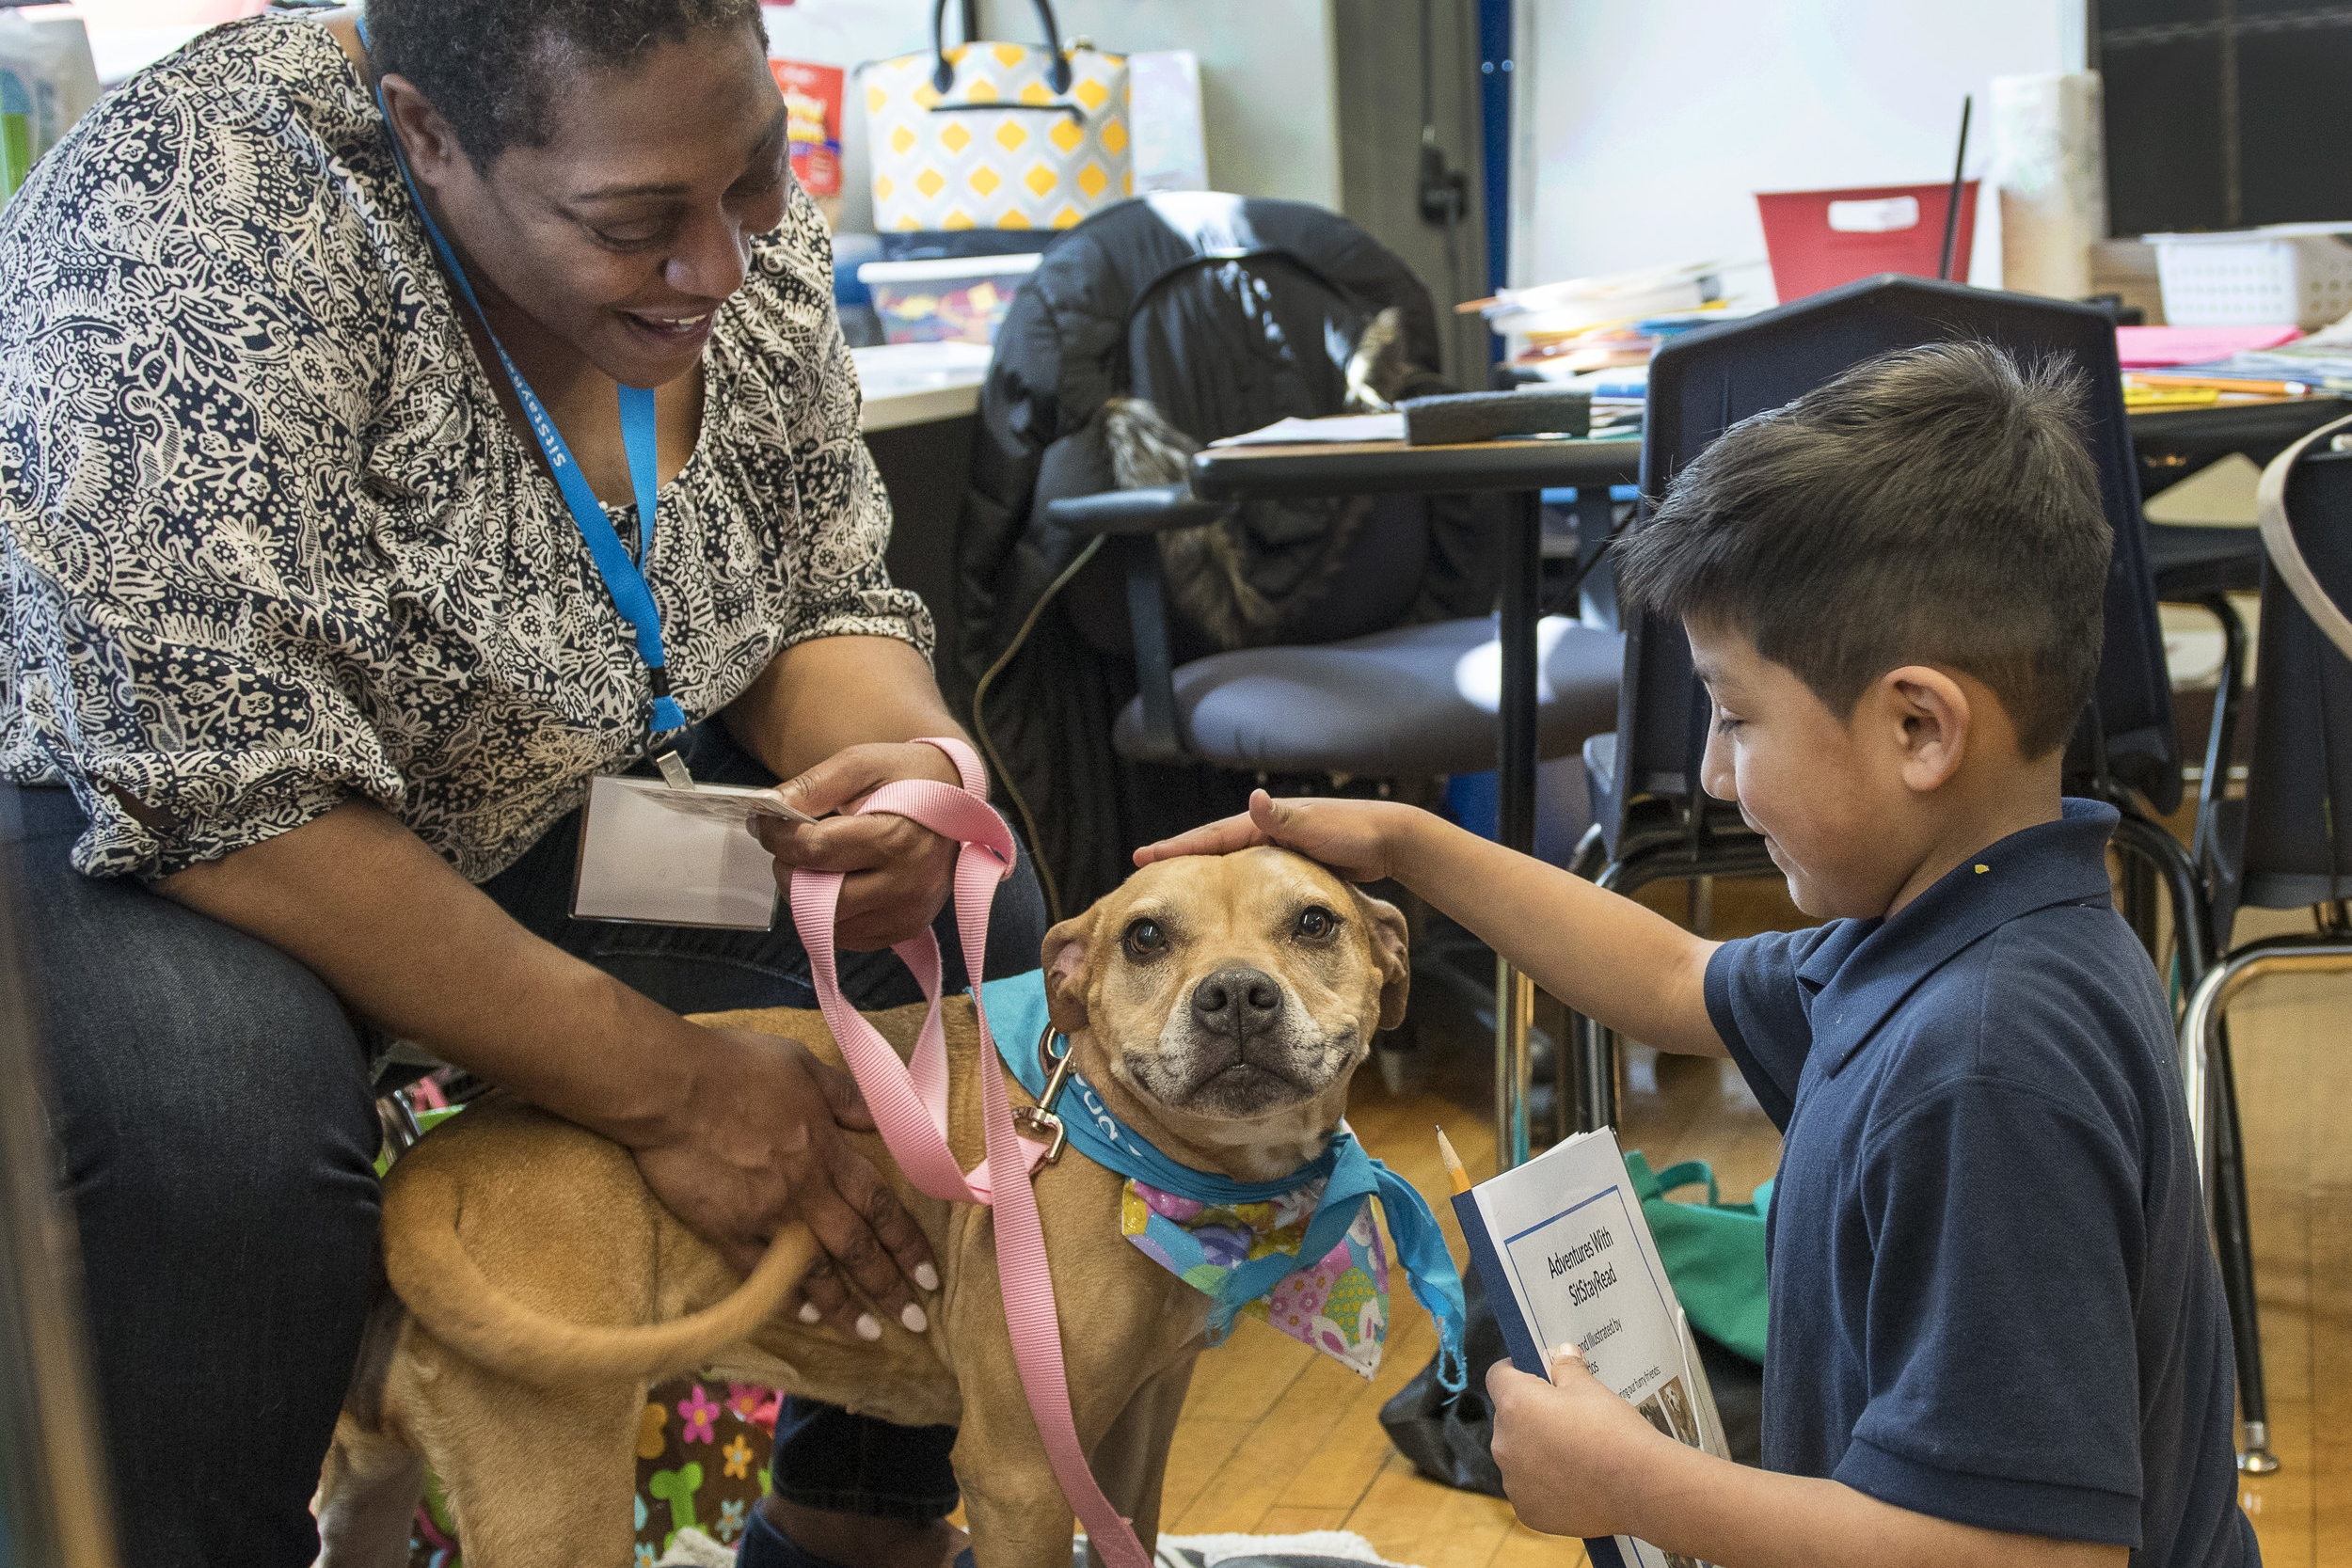 Dog Team volunteer Ms. Lisa and her Certified Reading Assistance Dog Allie listen to second-grade student Inez read one of her stories out loud. (J. Sall)